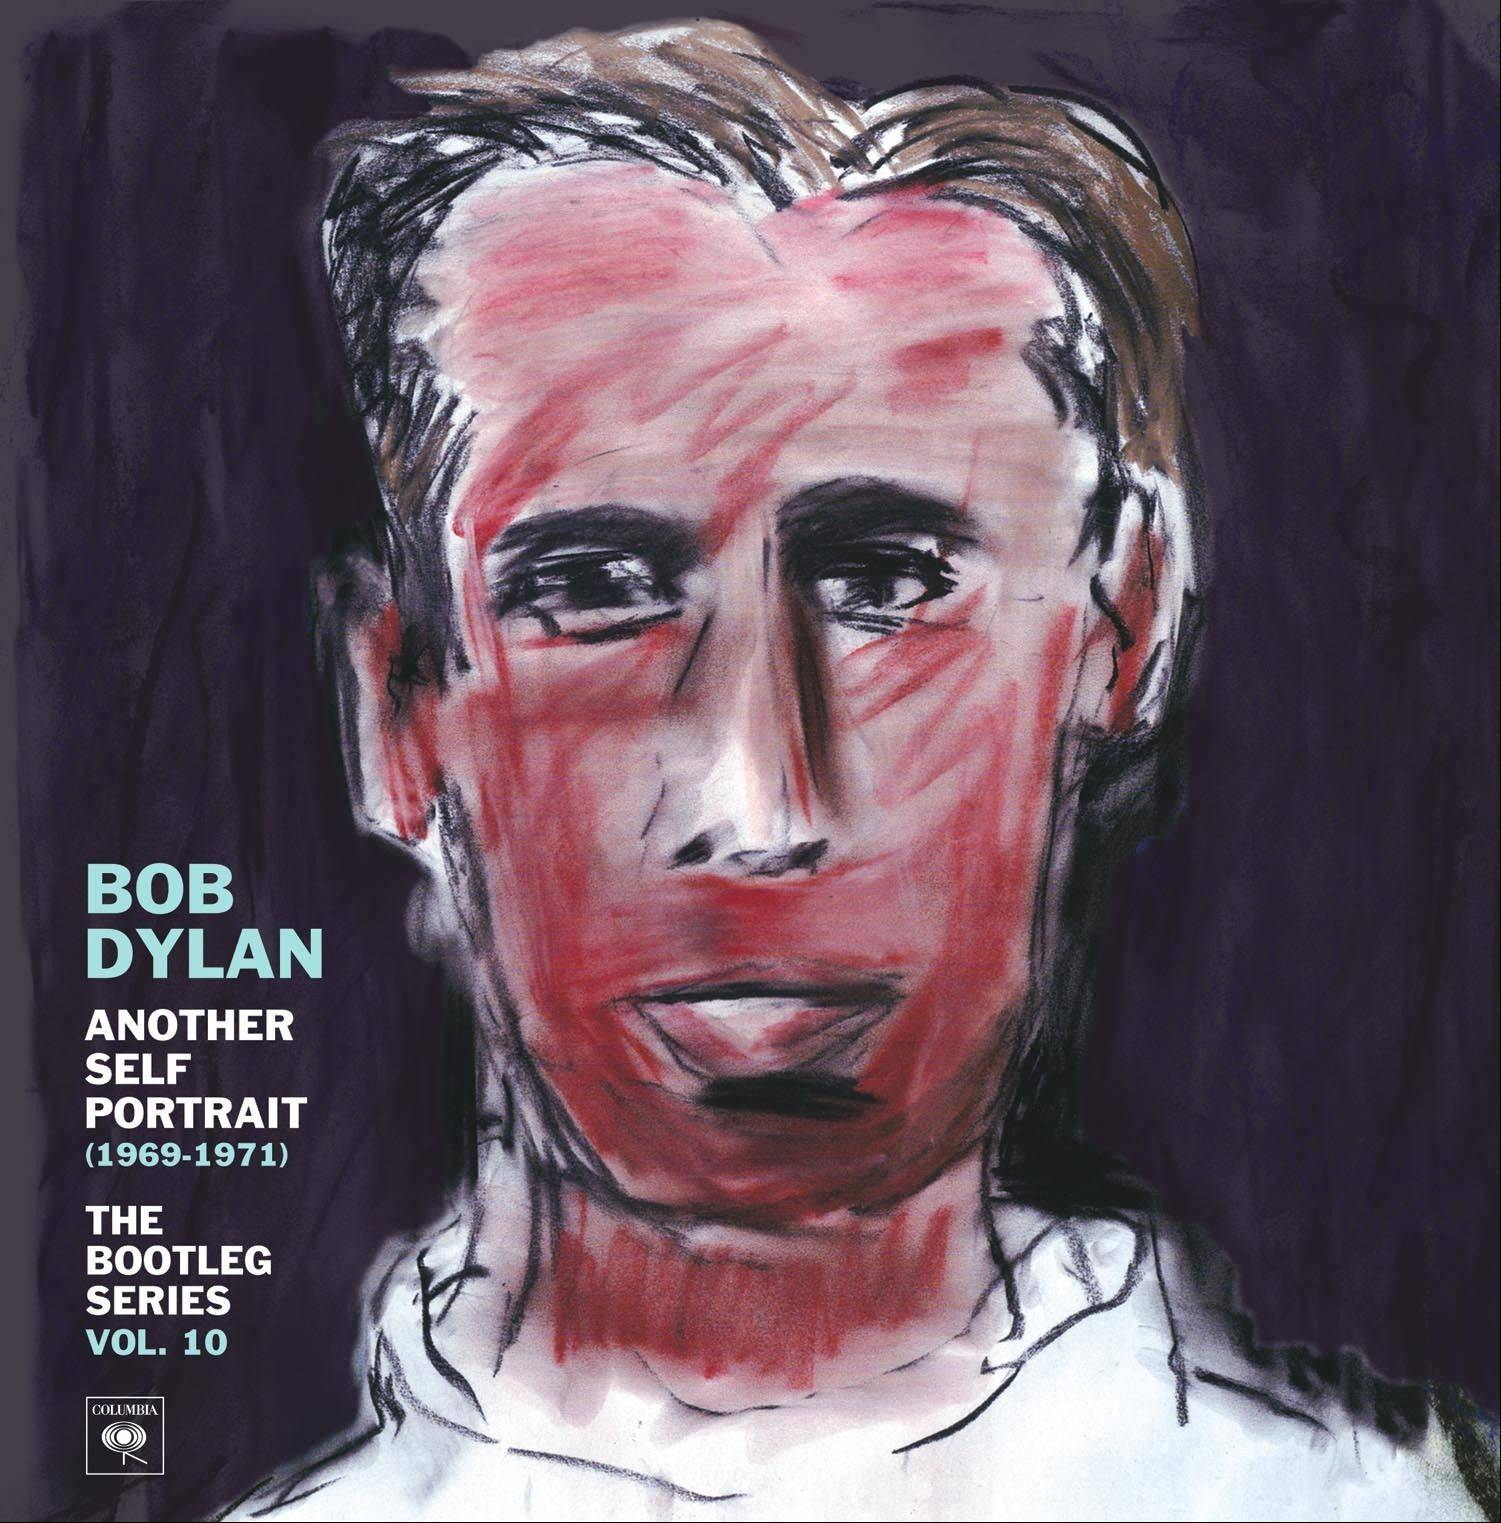 �Another Self Portrait (1969-1971): The Bootleg Series Vol. 10� by Bob Dylan